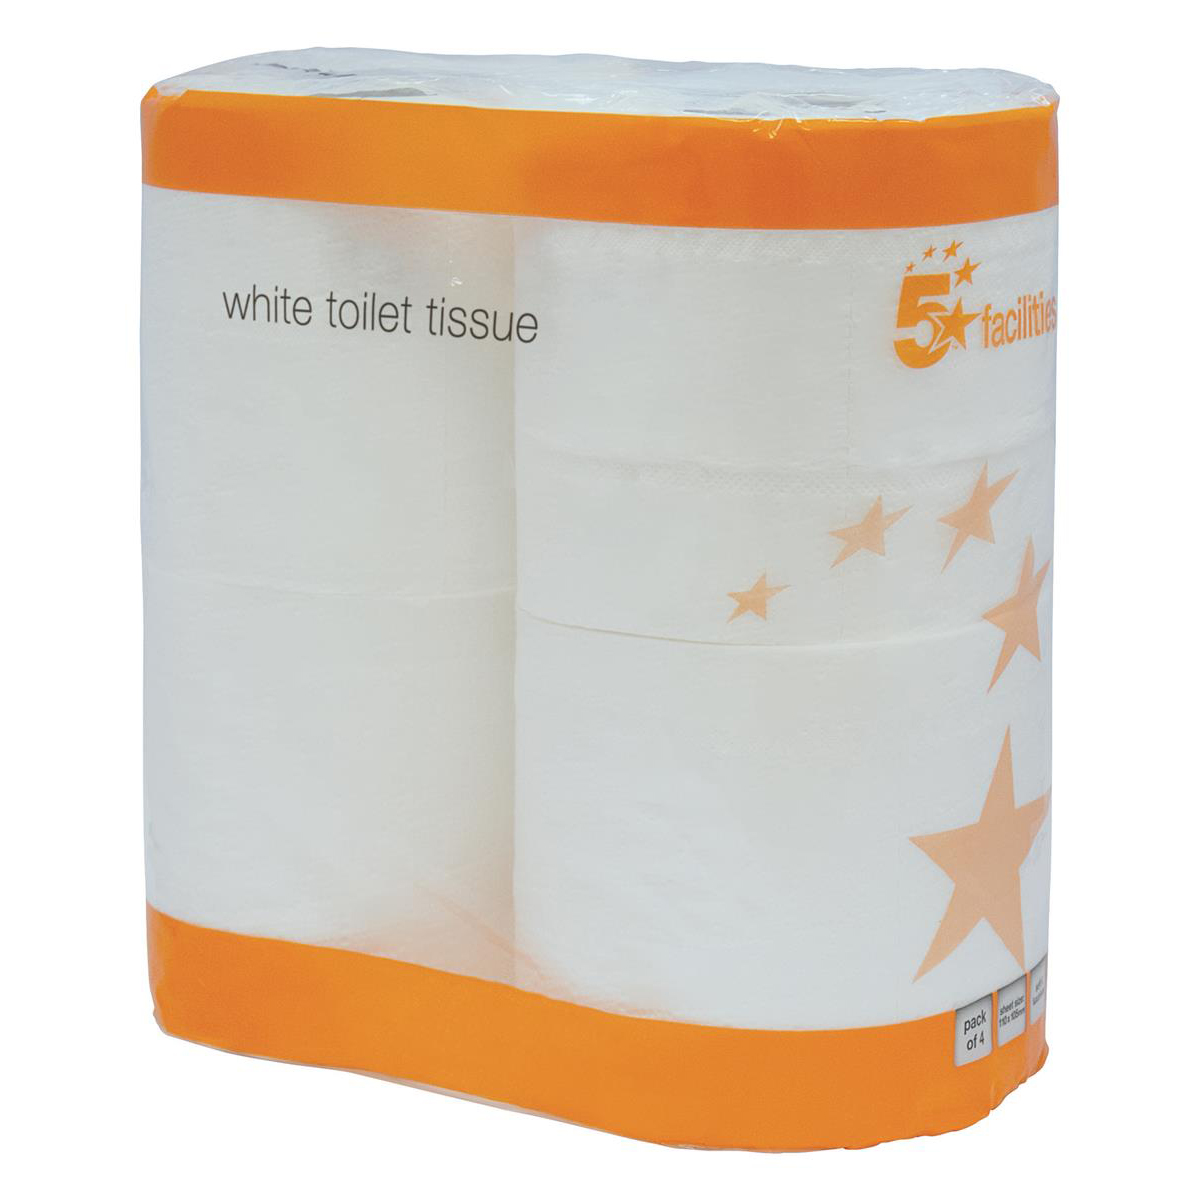 Toilet Tissue & Dispensers 5 Star Facilities Toilet Rolls 2-ply 102x92mm 4 Rolls of 200 Sheets Per Pack White Pack 9